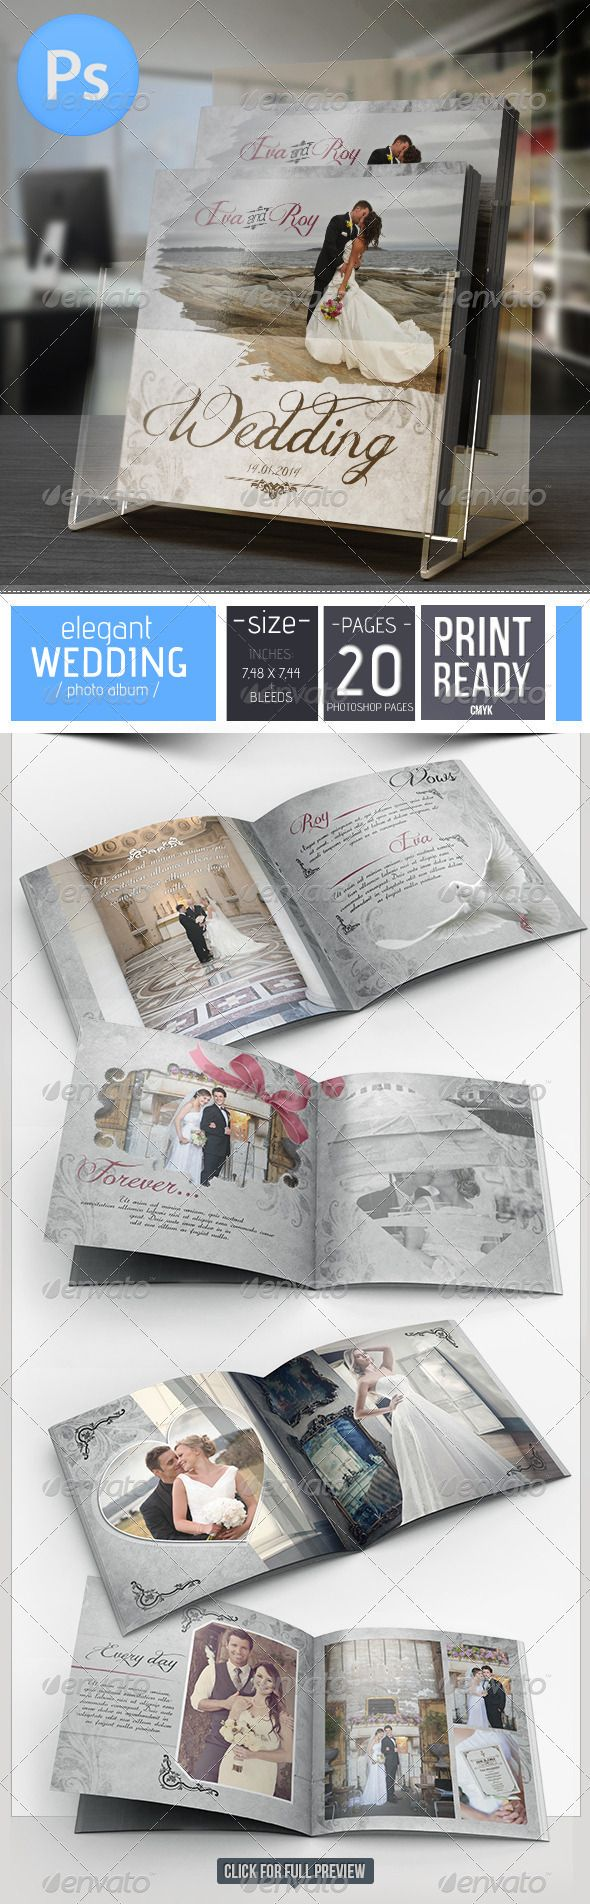 20 Pages Elegant Wedding Photo Album For Photoshop - Photo Albums Print Templates